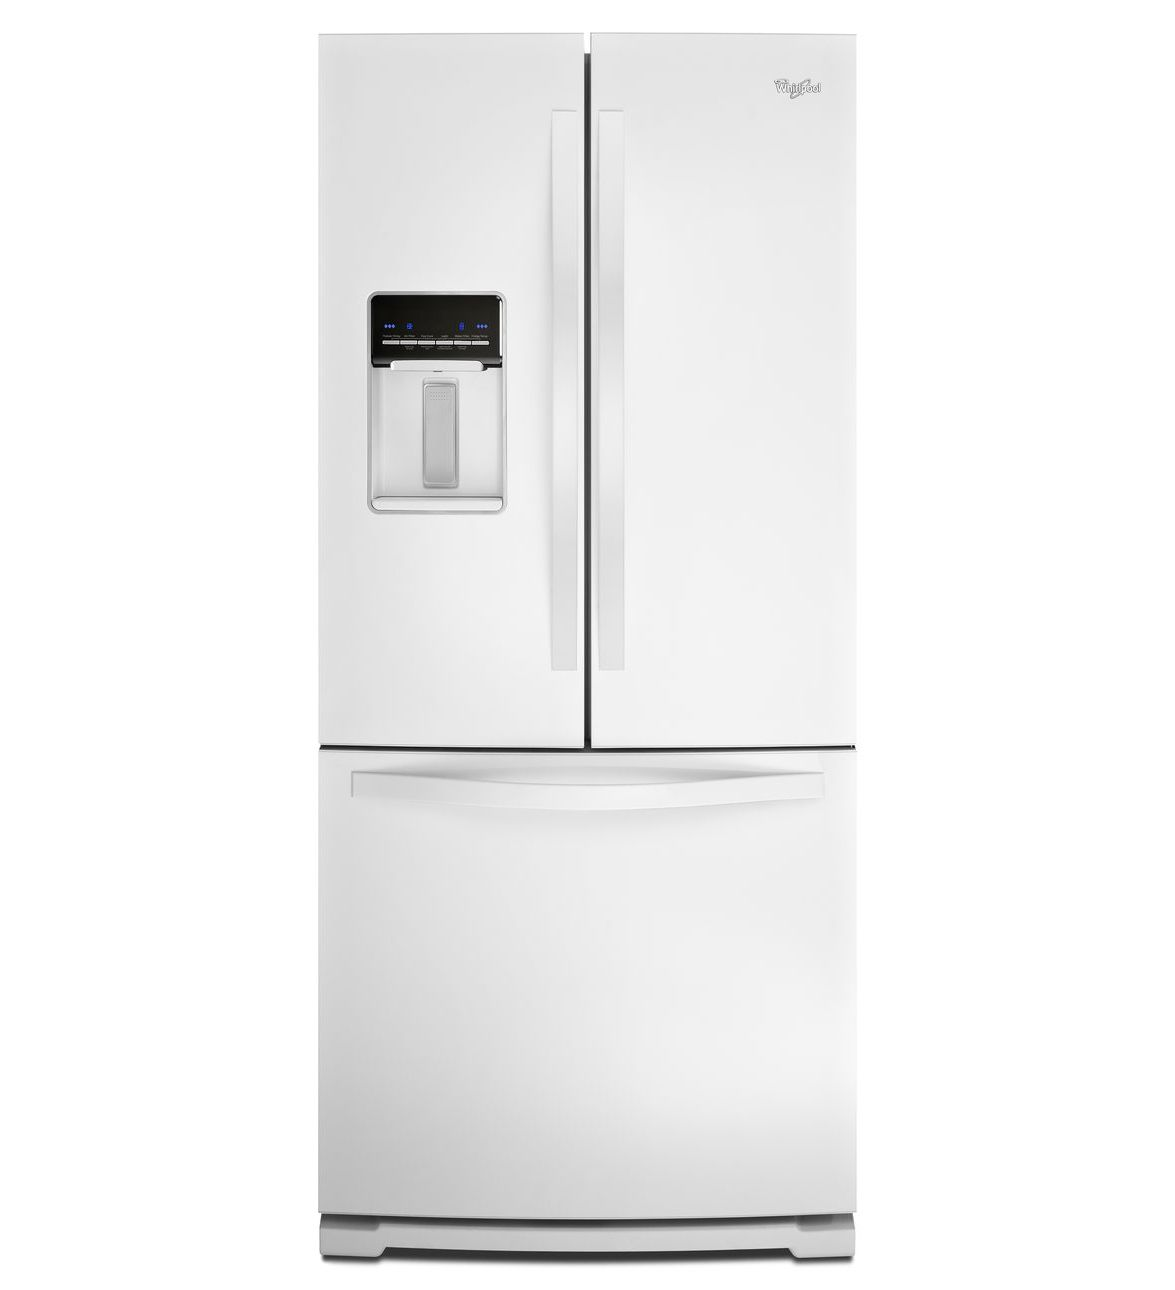 Exceptionnel ... French Door Refrigerator With Exterior Water Dispenser U2013 19.7 Cu. Ft.  82RE